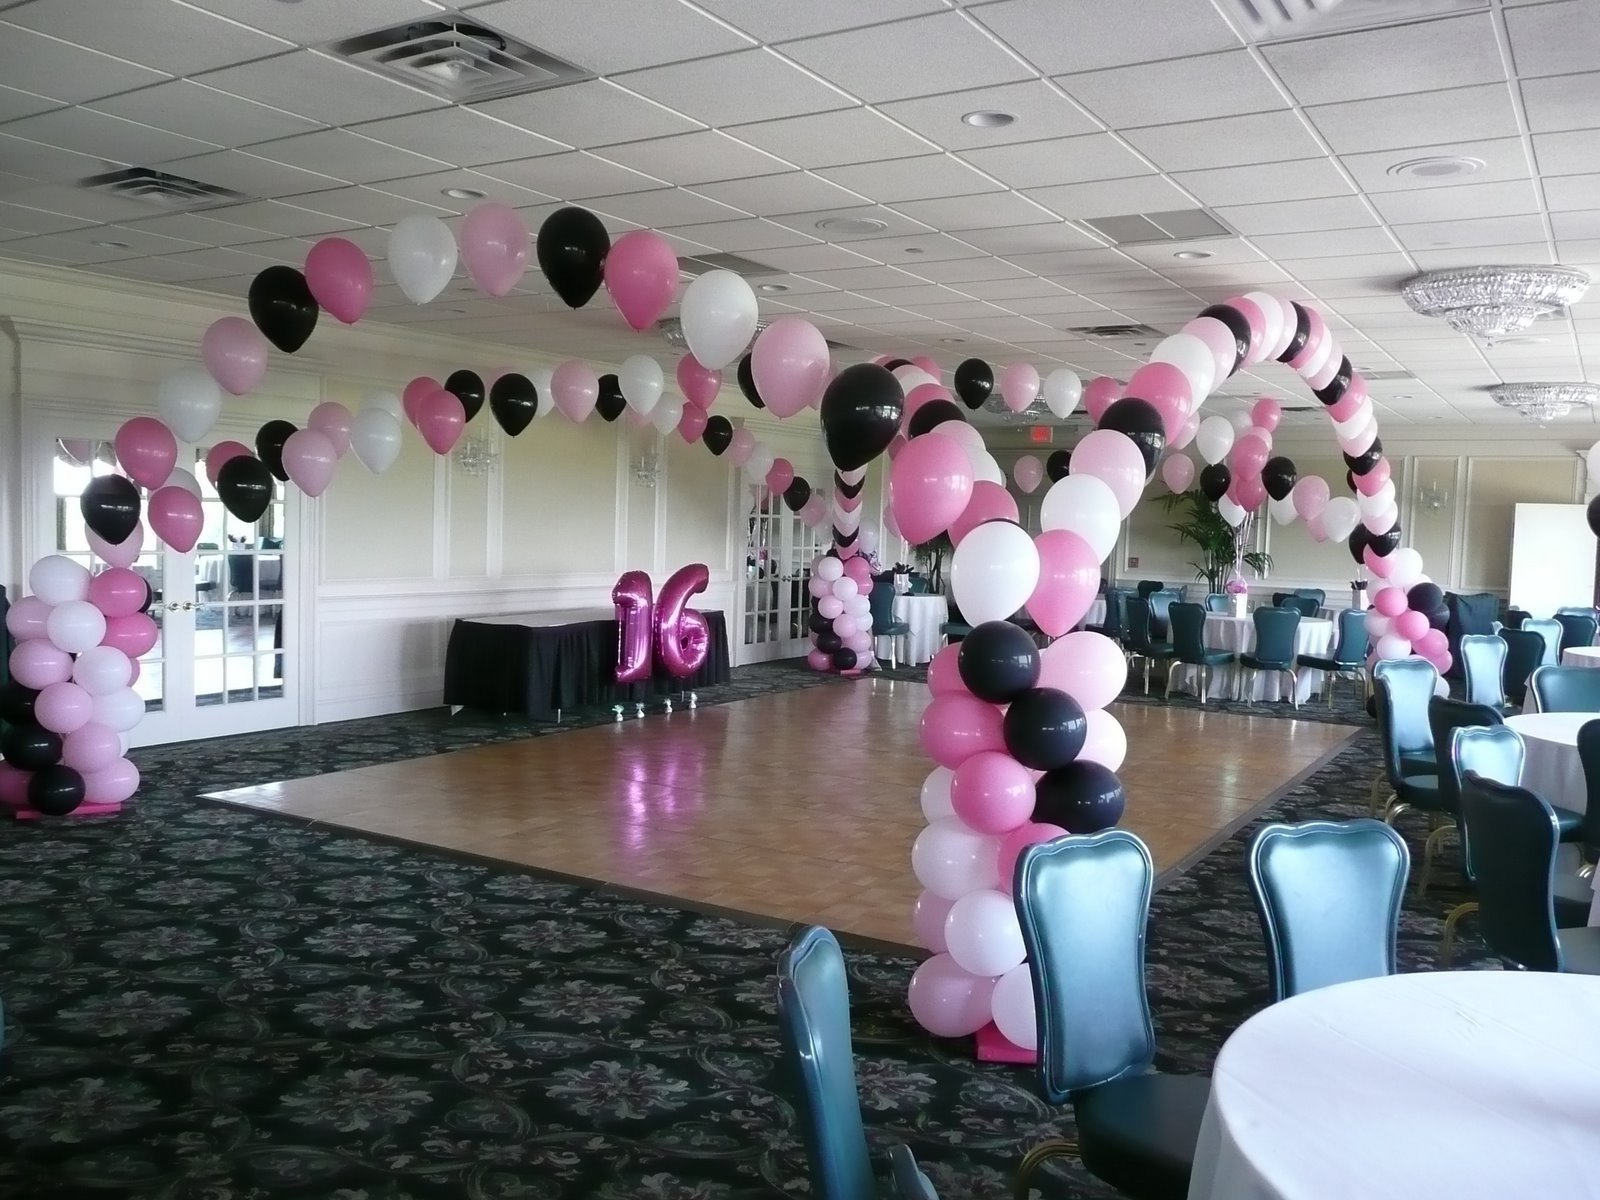 10 Best Awesome Sweet 16 Party Ideas awesome sweet 16 party decorations all in home decor ideas ideas 1 2020